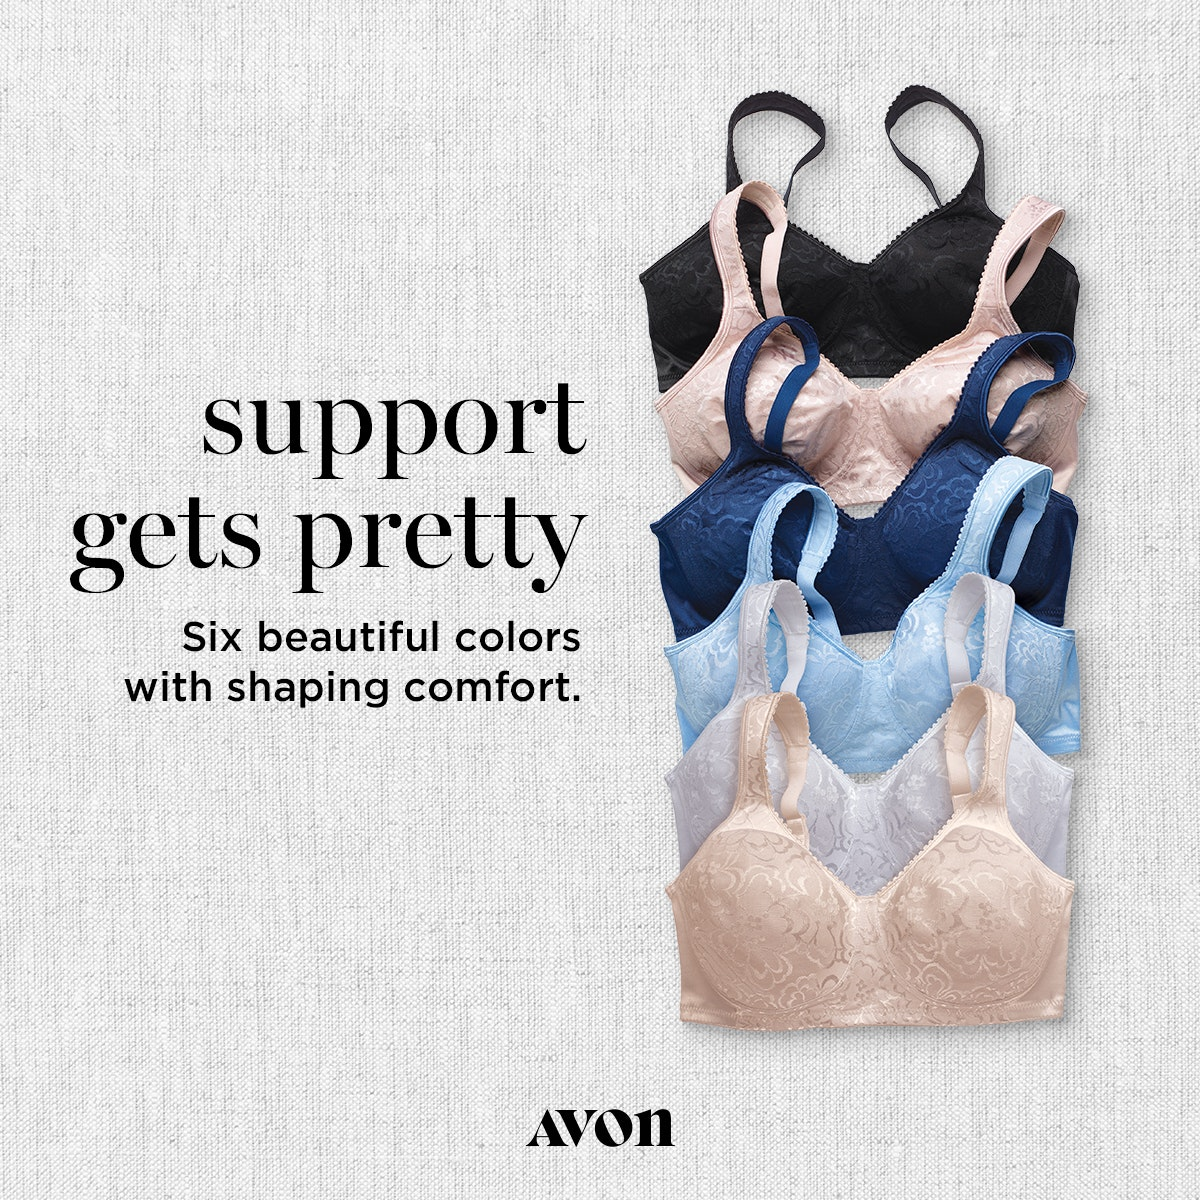 Avon Bra Sale 2 for $50.00 on Playtex, Bali and Lilyette Bras https://www.avon.com/brochure?rep=mybeauty  Pages 176-179 in the Online Brochure. Campaign 16